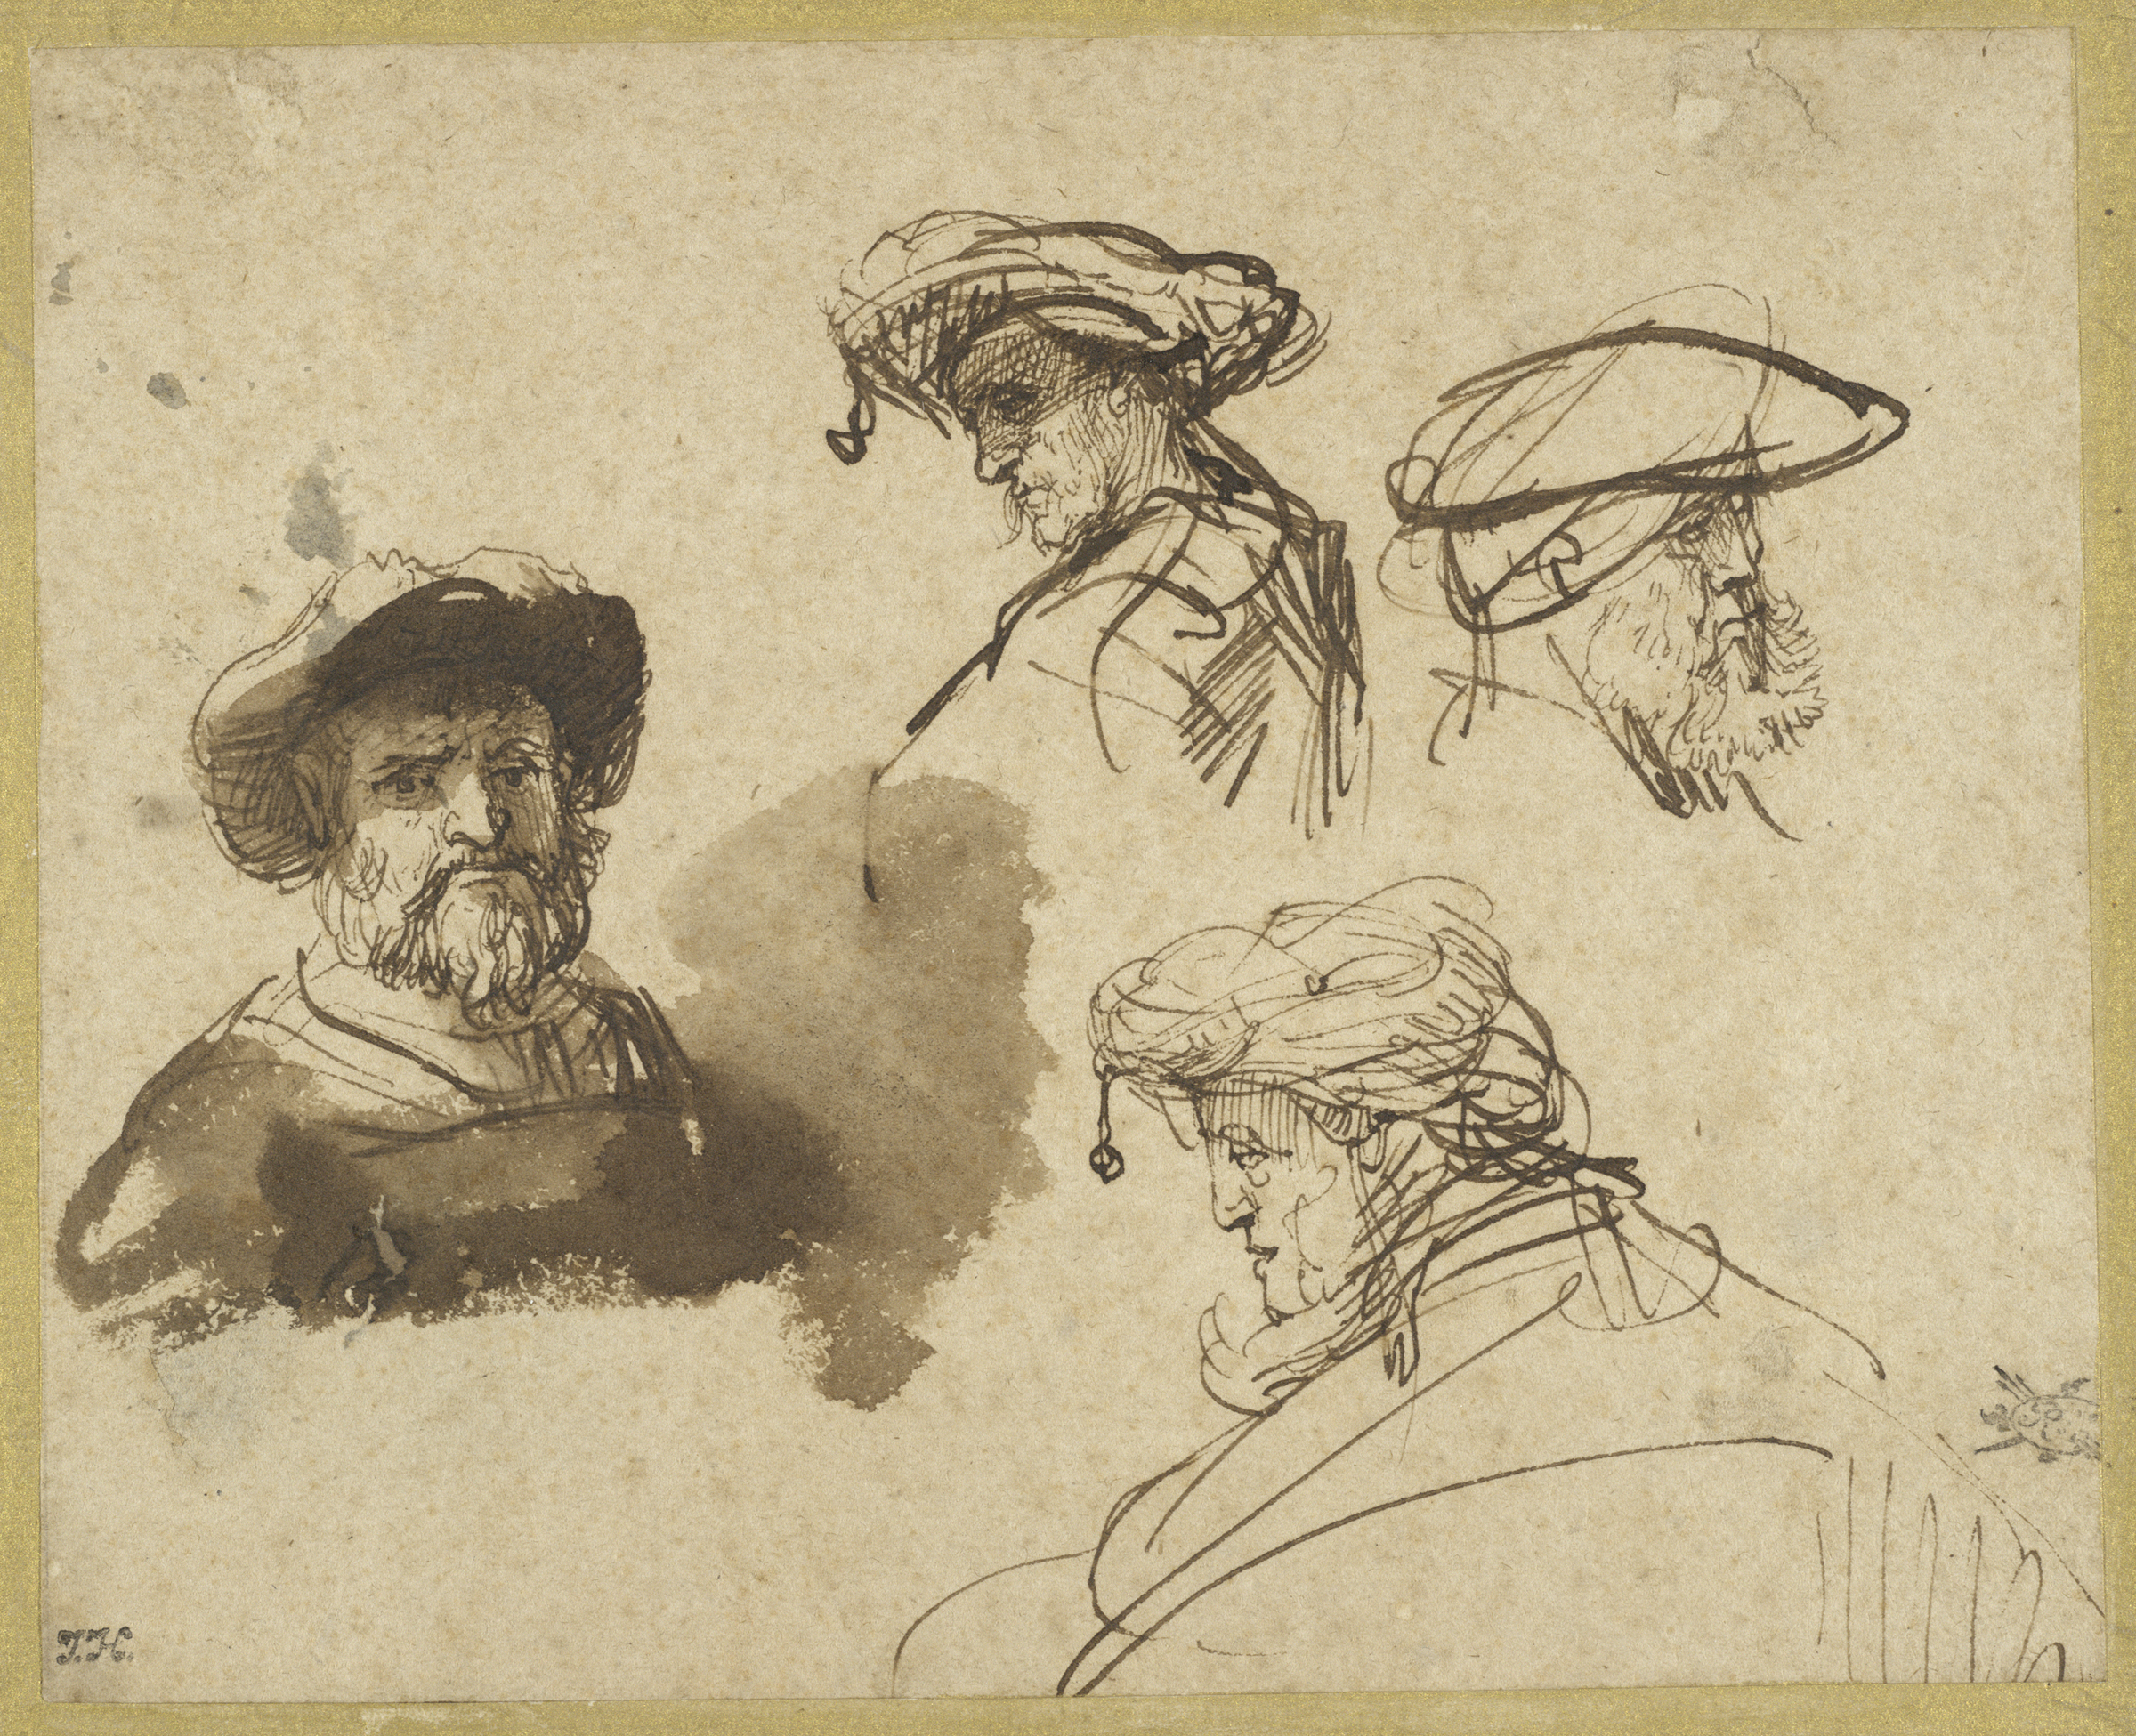 Rembrandt Harmensz. van Rijn, Four Studies of Male Heads, c. 1636. Brown ink and brown wash on cream antique laid paper. The Maida and George Abrams Collection, Boston, Massachusetts. Photo: © President and Fellows of Harvard College.